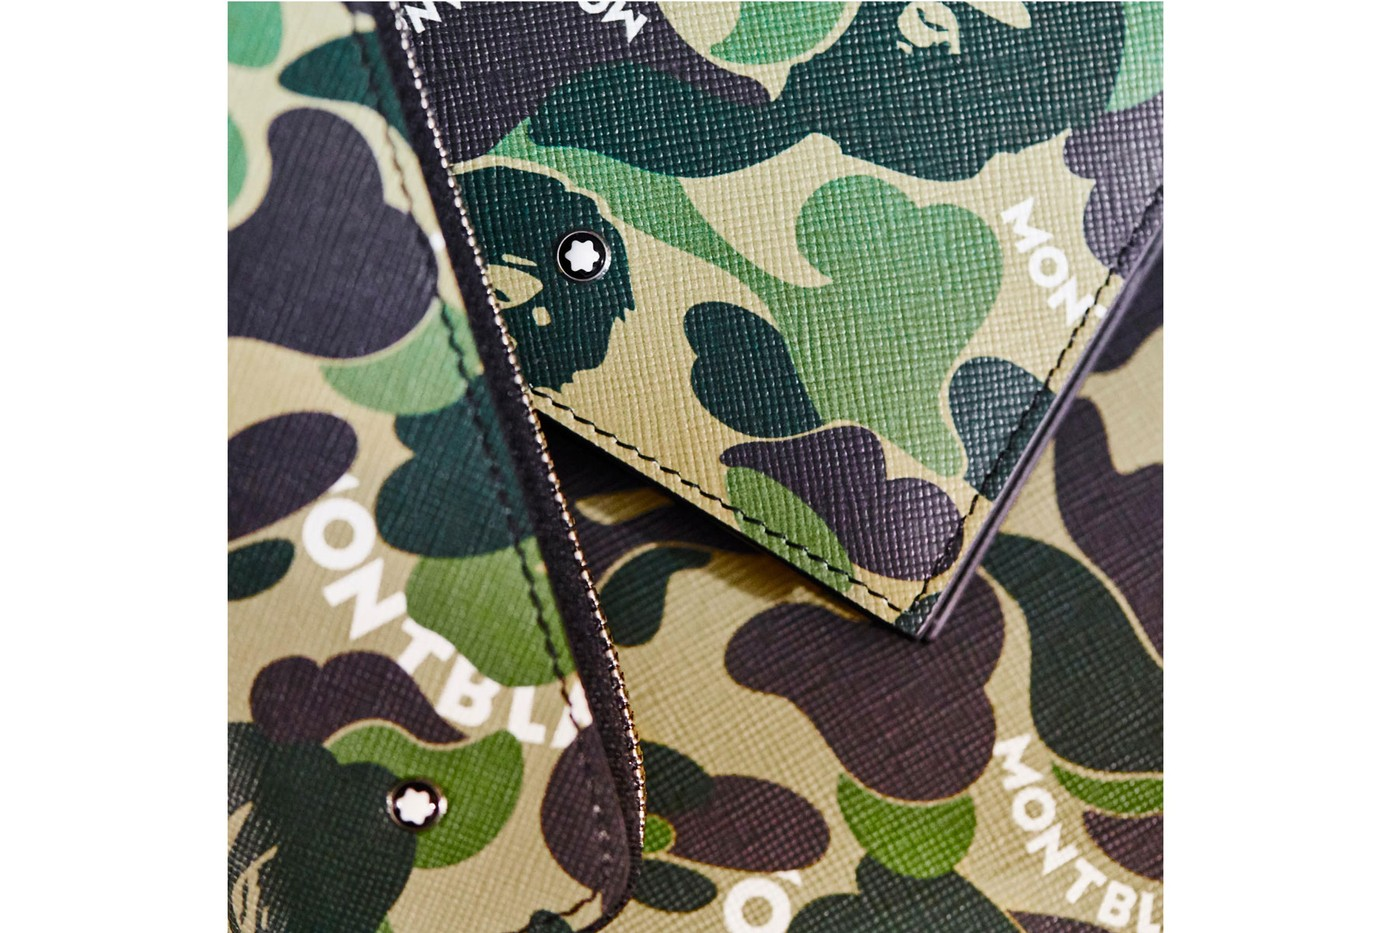 https___hypebeast.com_image_2019_06_bape-a-bathing-ape-montblanc-ss19-leather-goods-collection-16.jpg